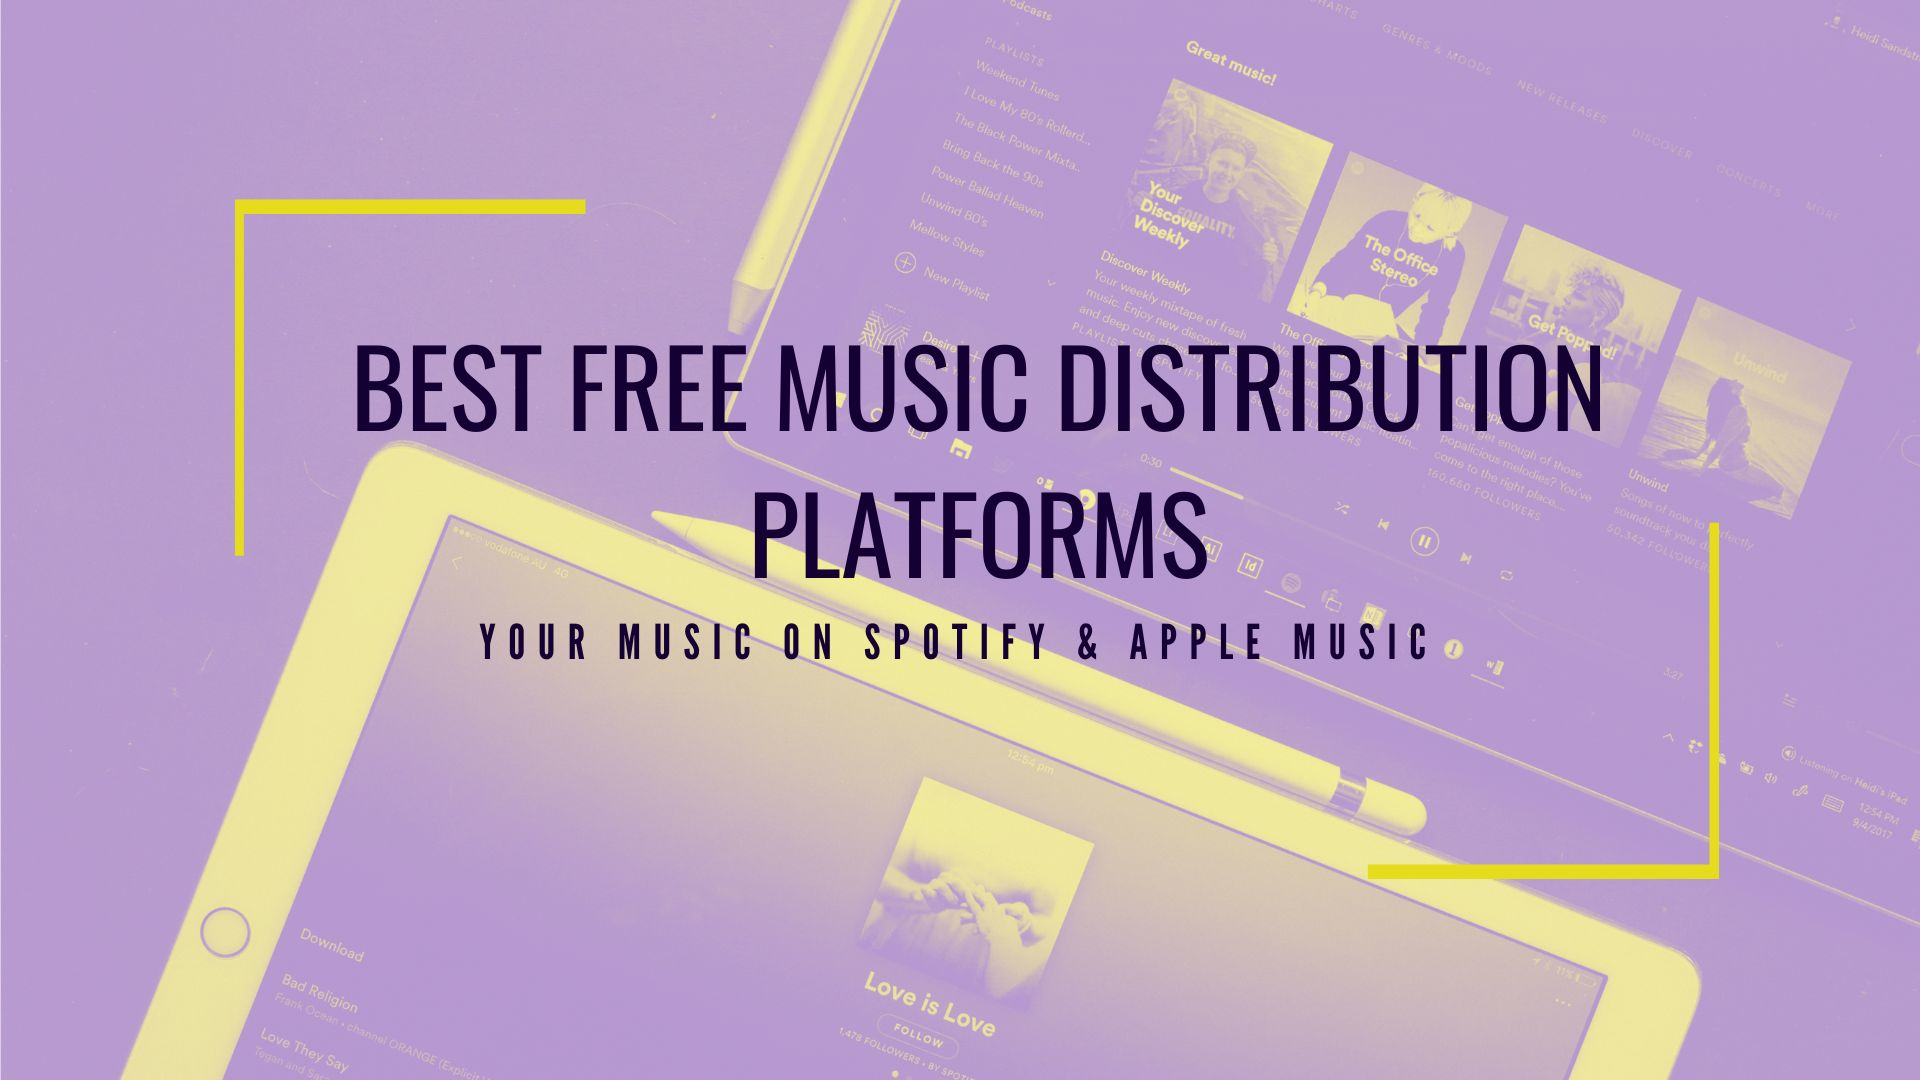 Free Music Distribution: How to get music on Spotify for free? The music Aggregator check! Distrokid, Routenote, Soundbetter